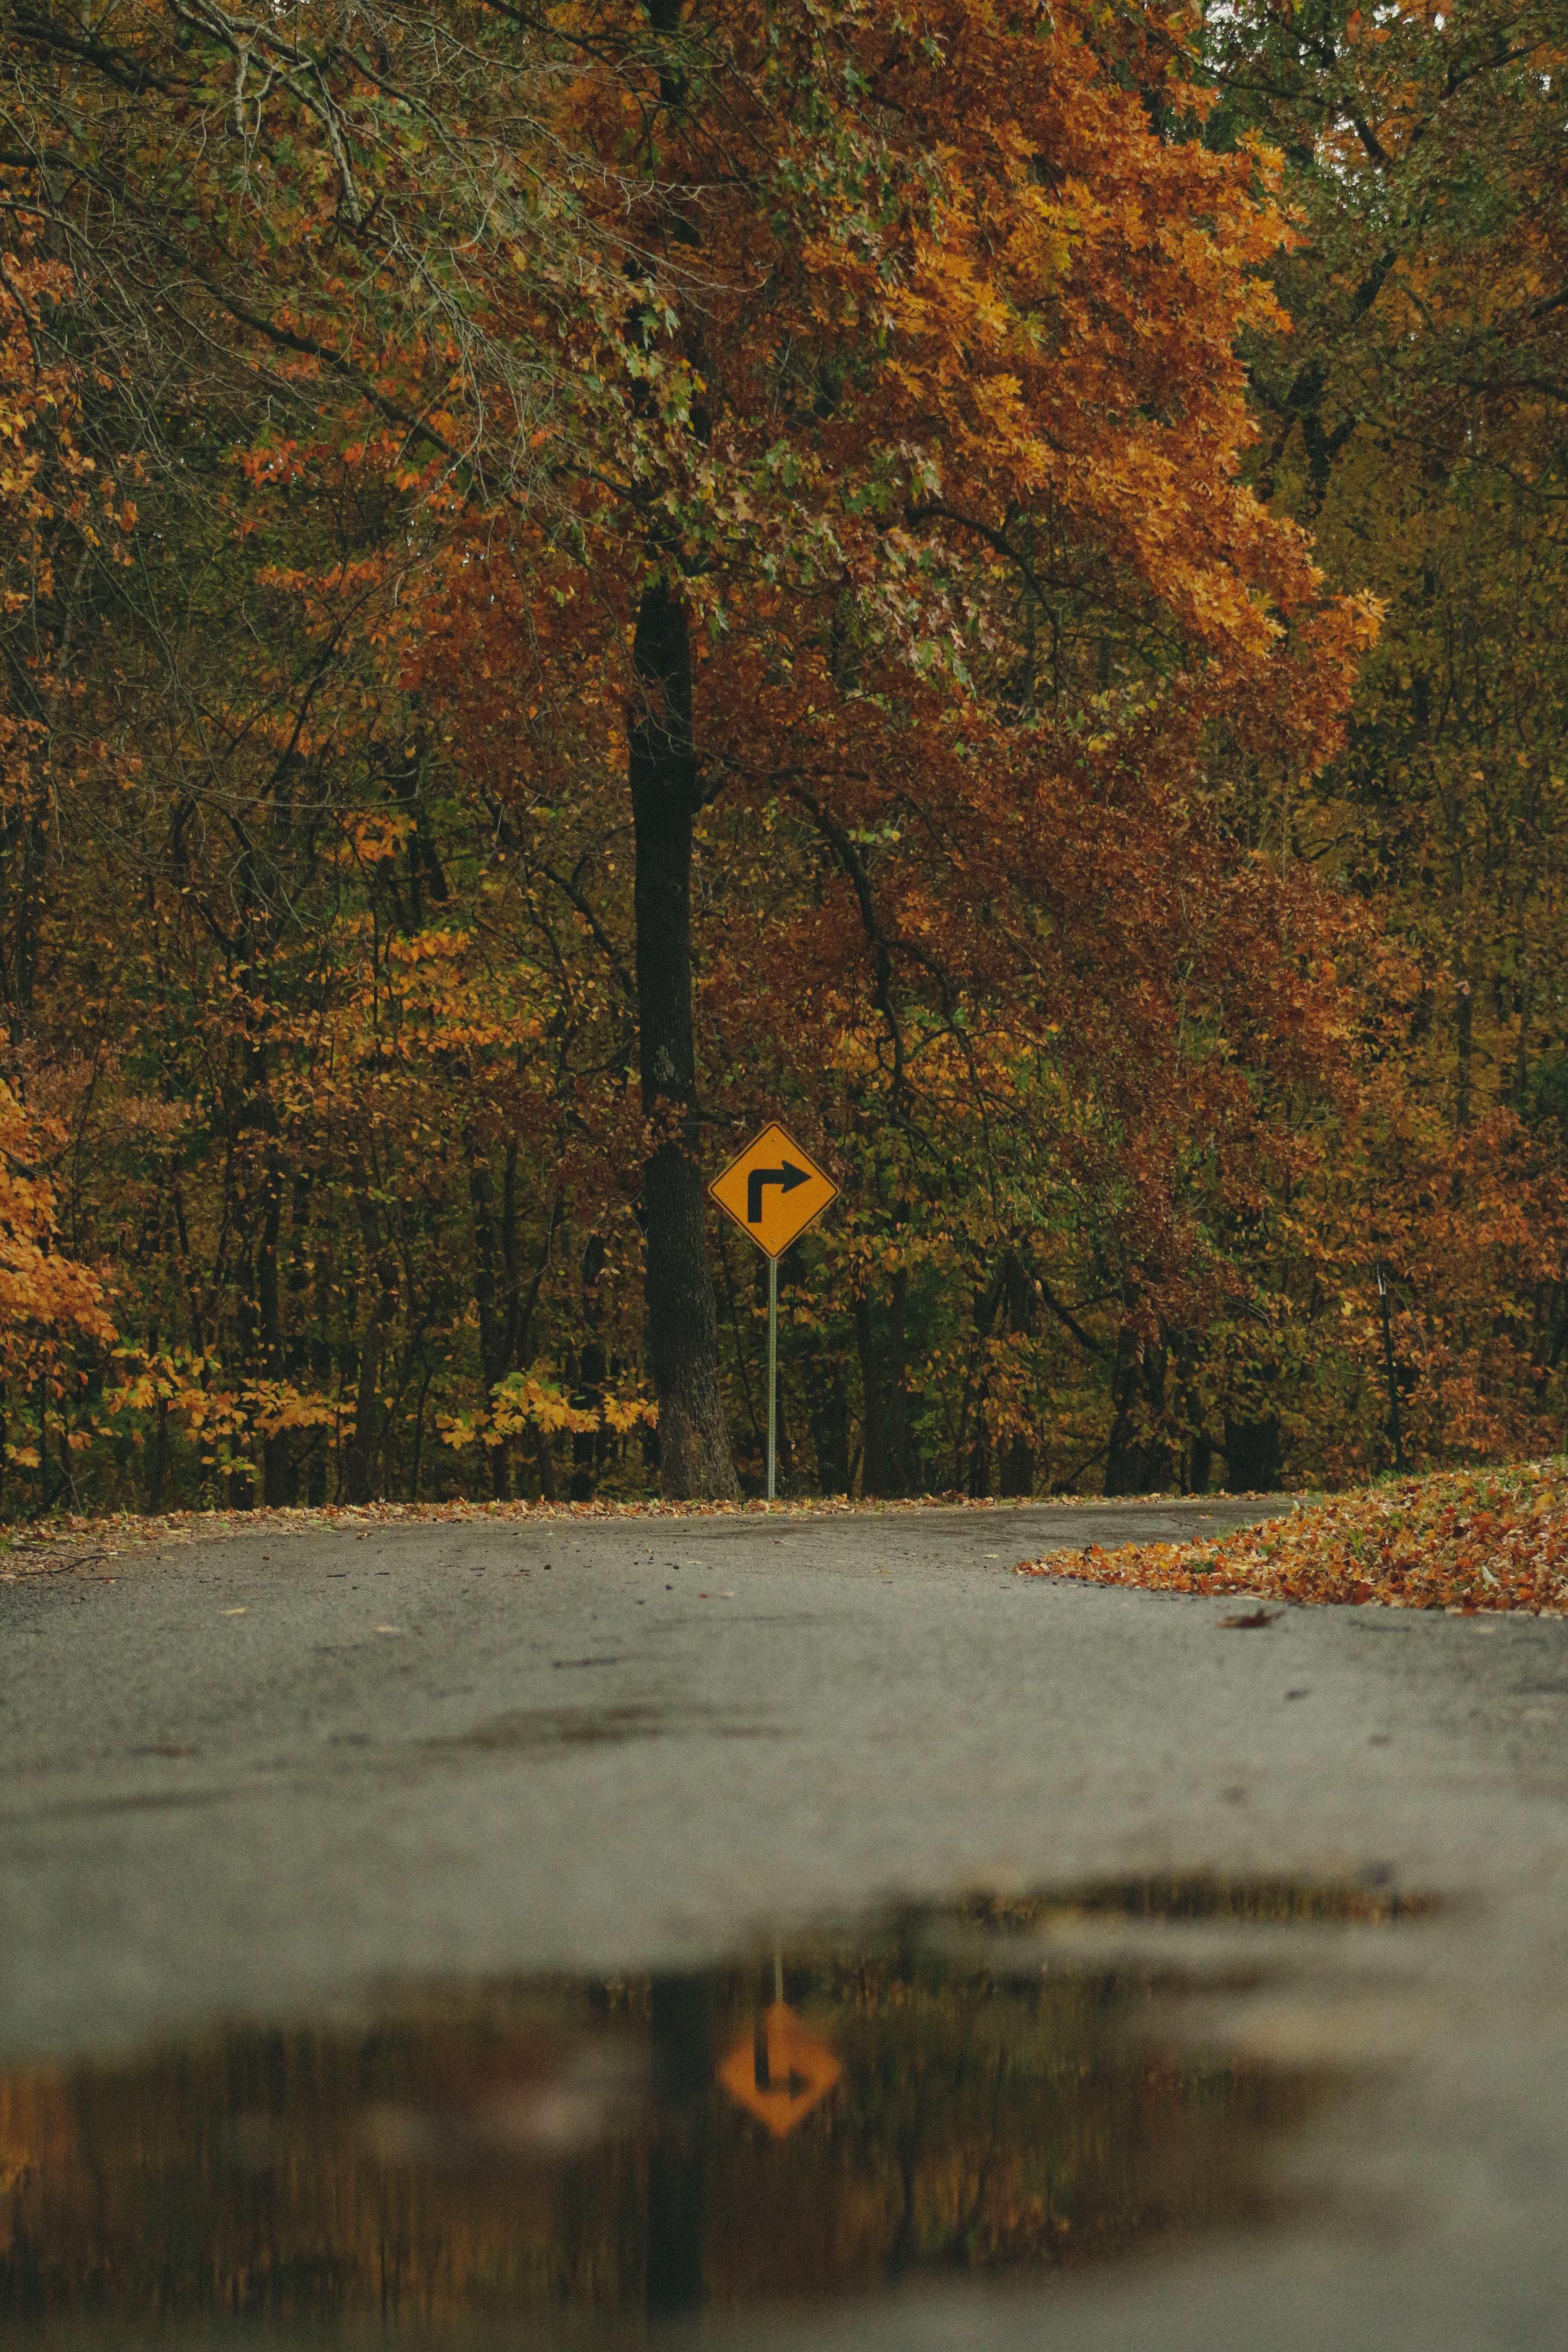 122831 download wallpaper Nature, Arrow, Trees, Forest, Autumn, Sign screensavers and pictures for free